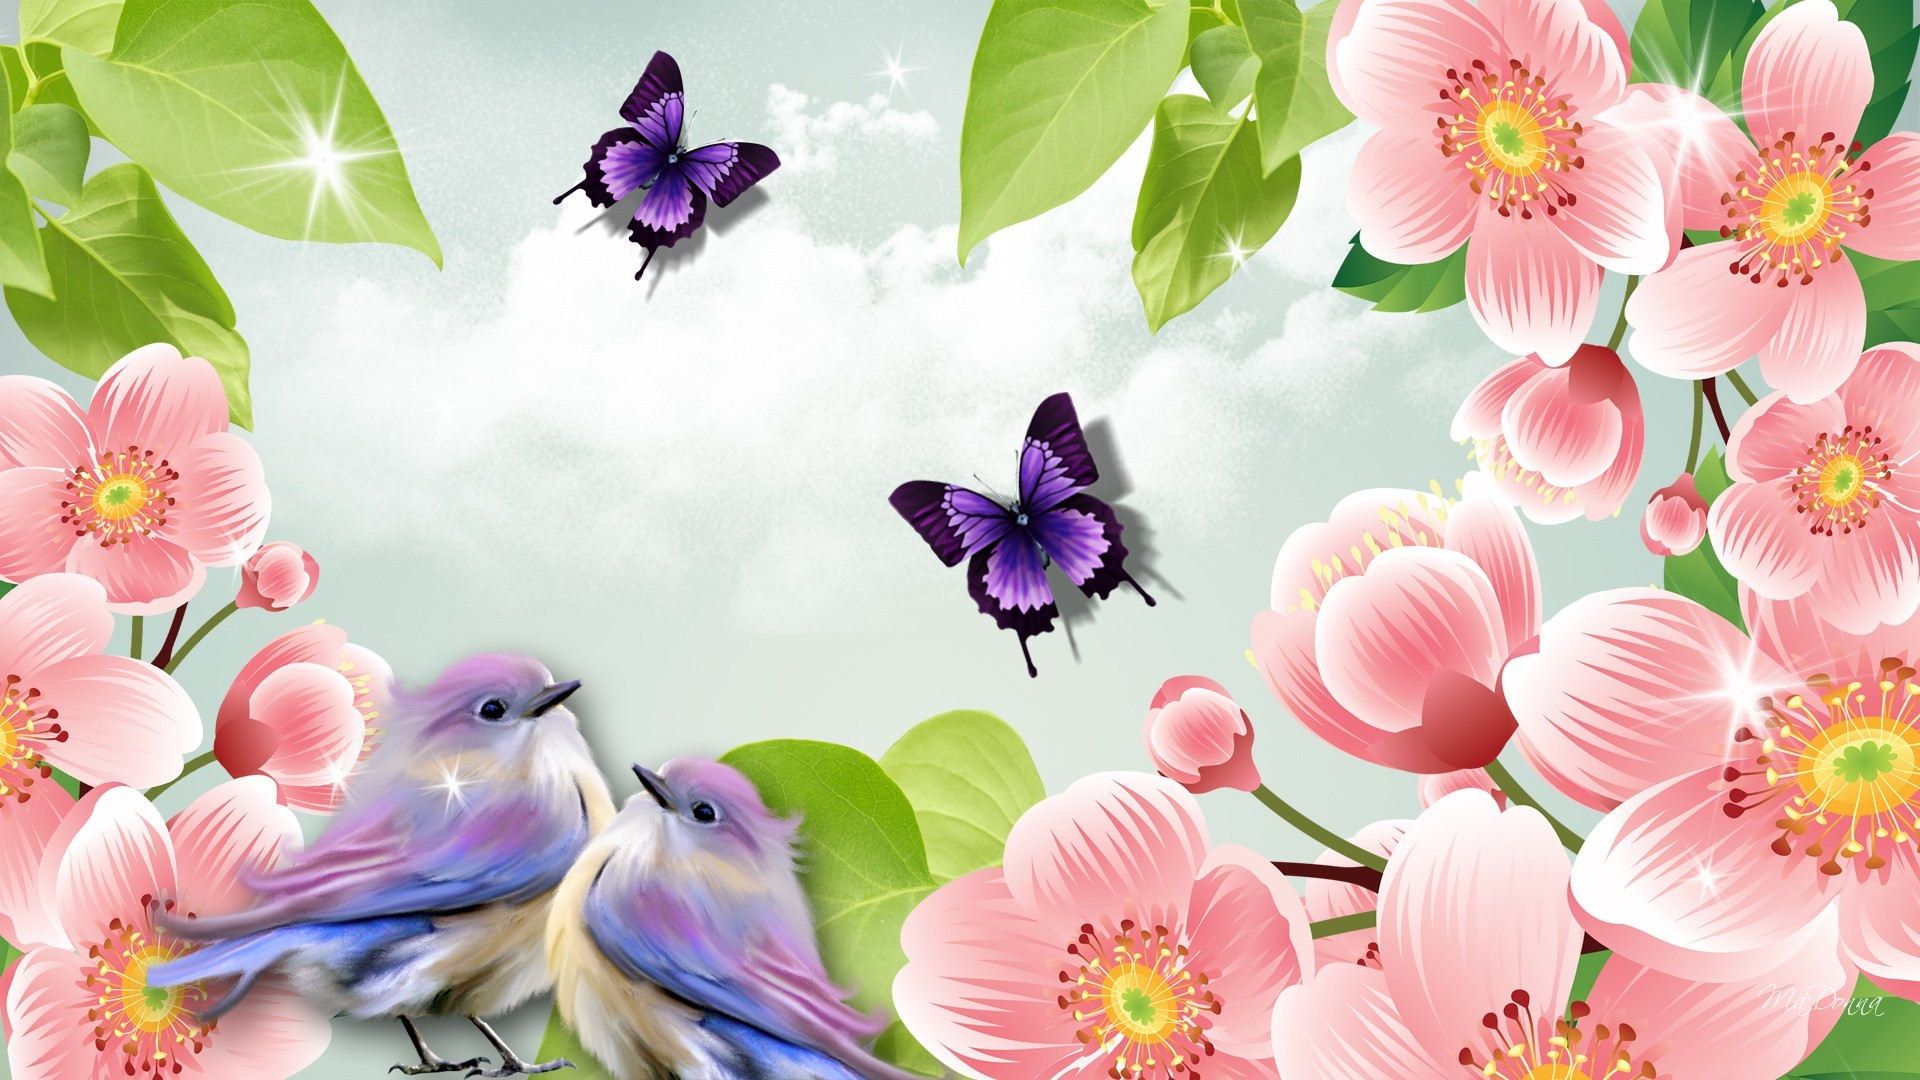 Cute Spring Backgrounds 43 Images